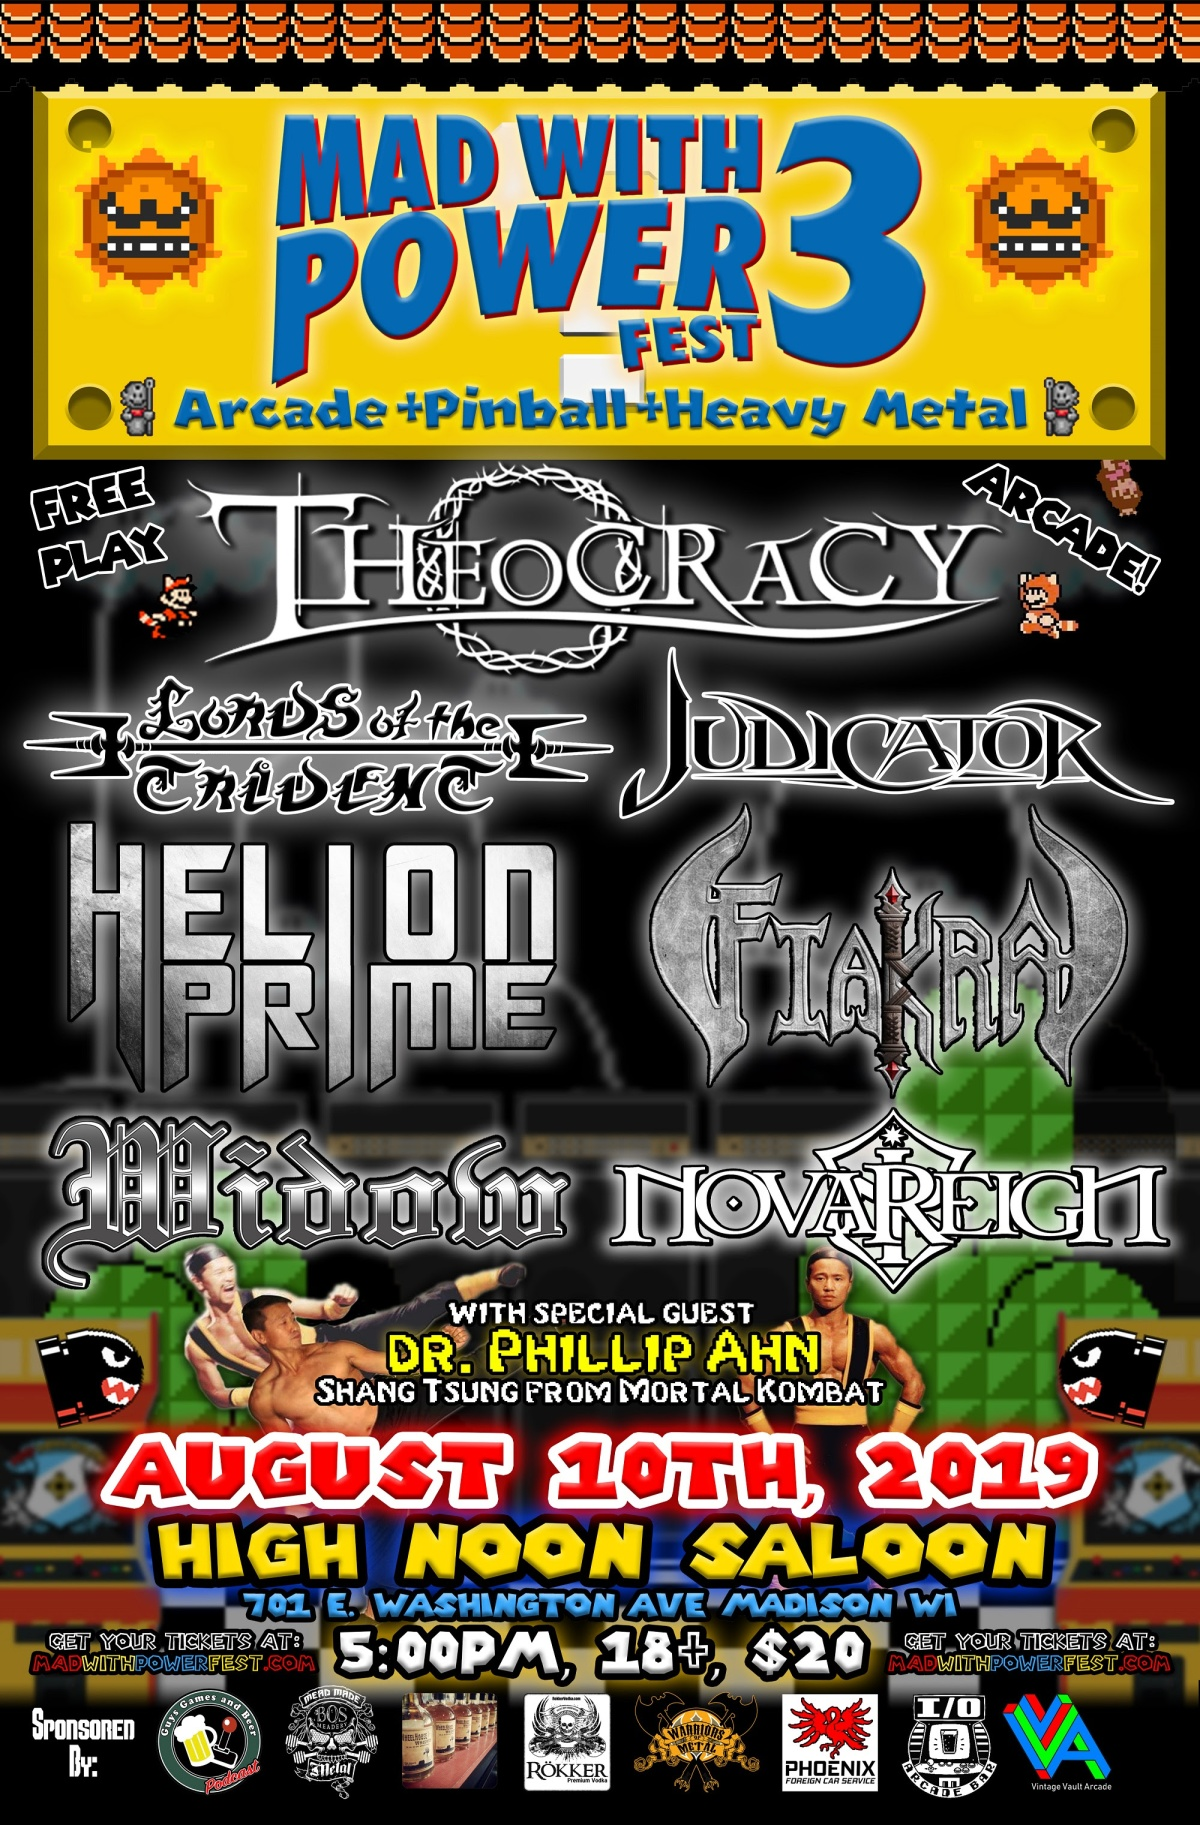 Mad With Power Fest w/ Theocracy, Lords Of The Trident, Judicator, Helion Prime+More